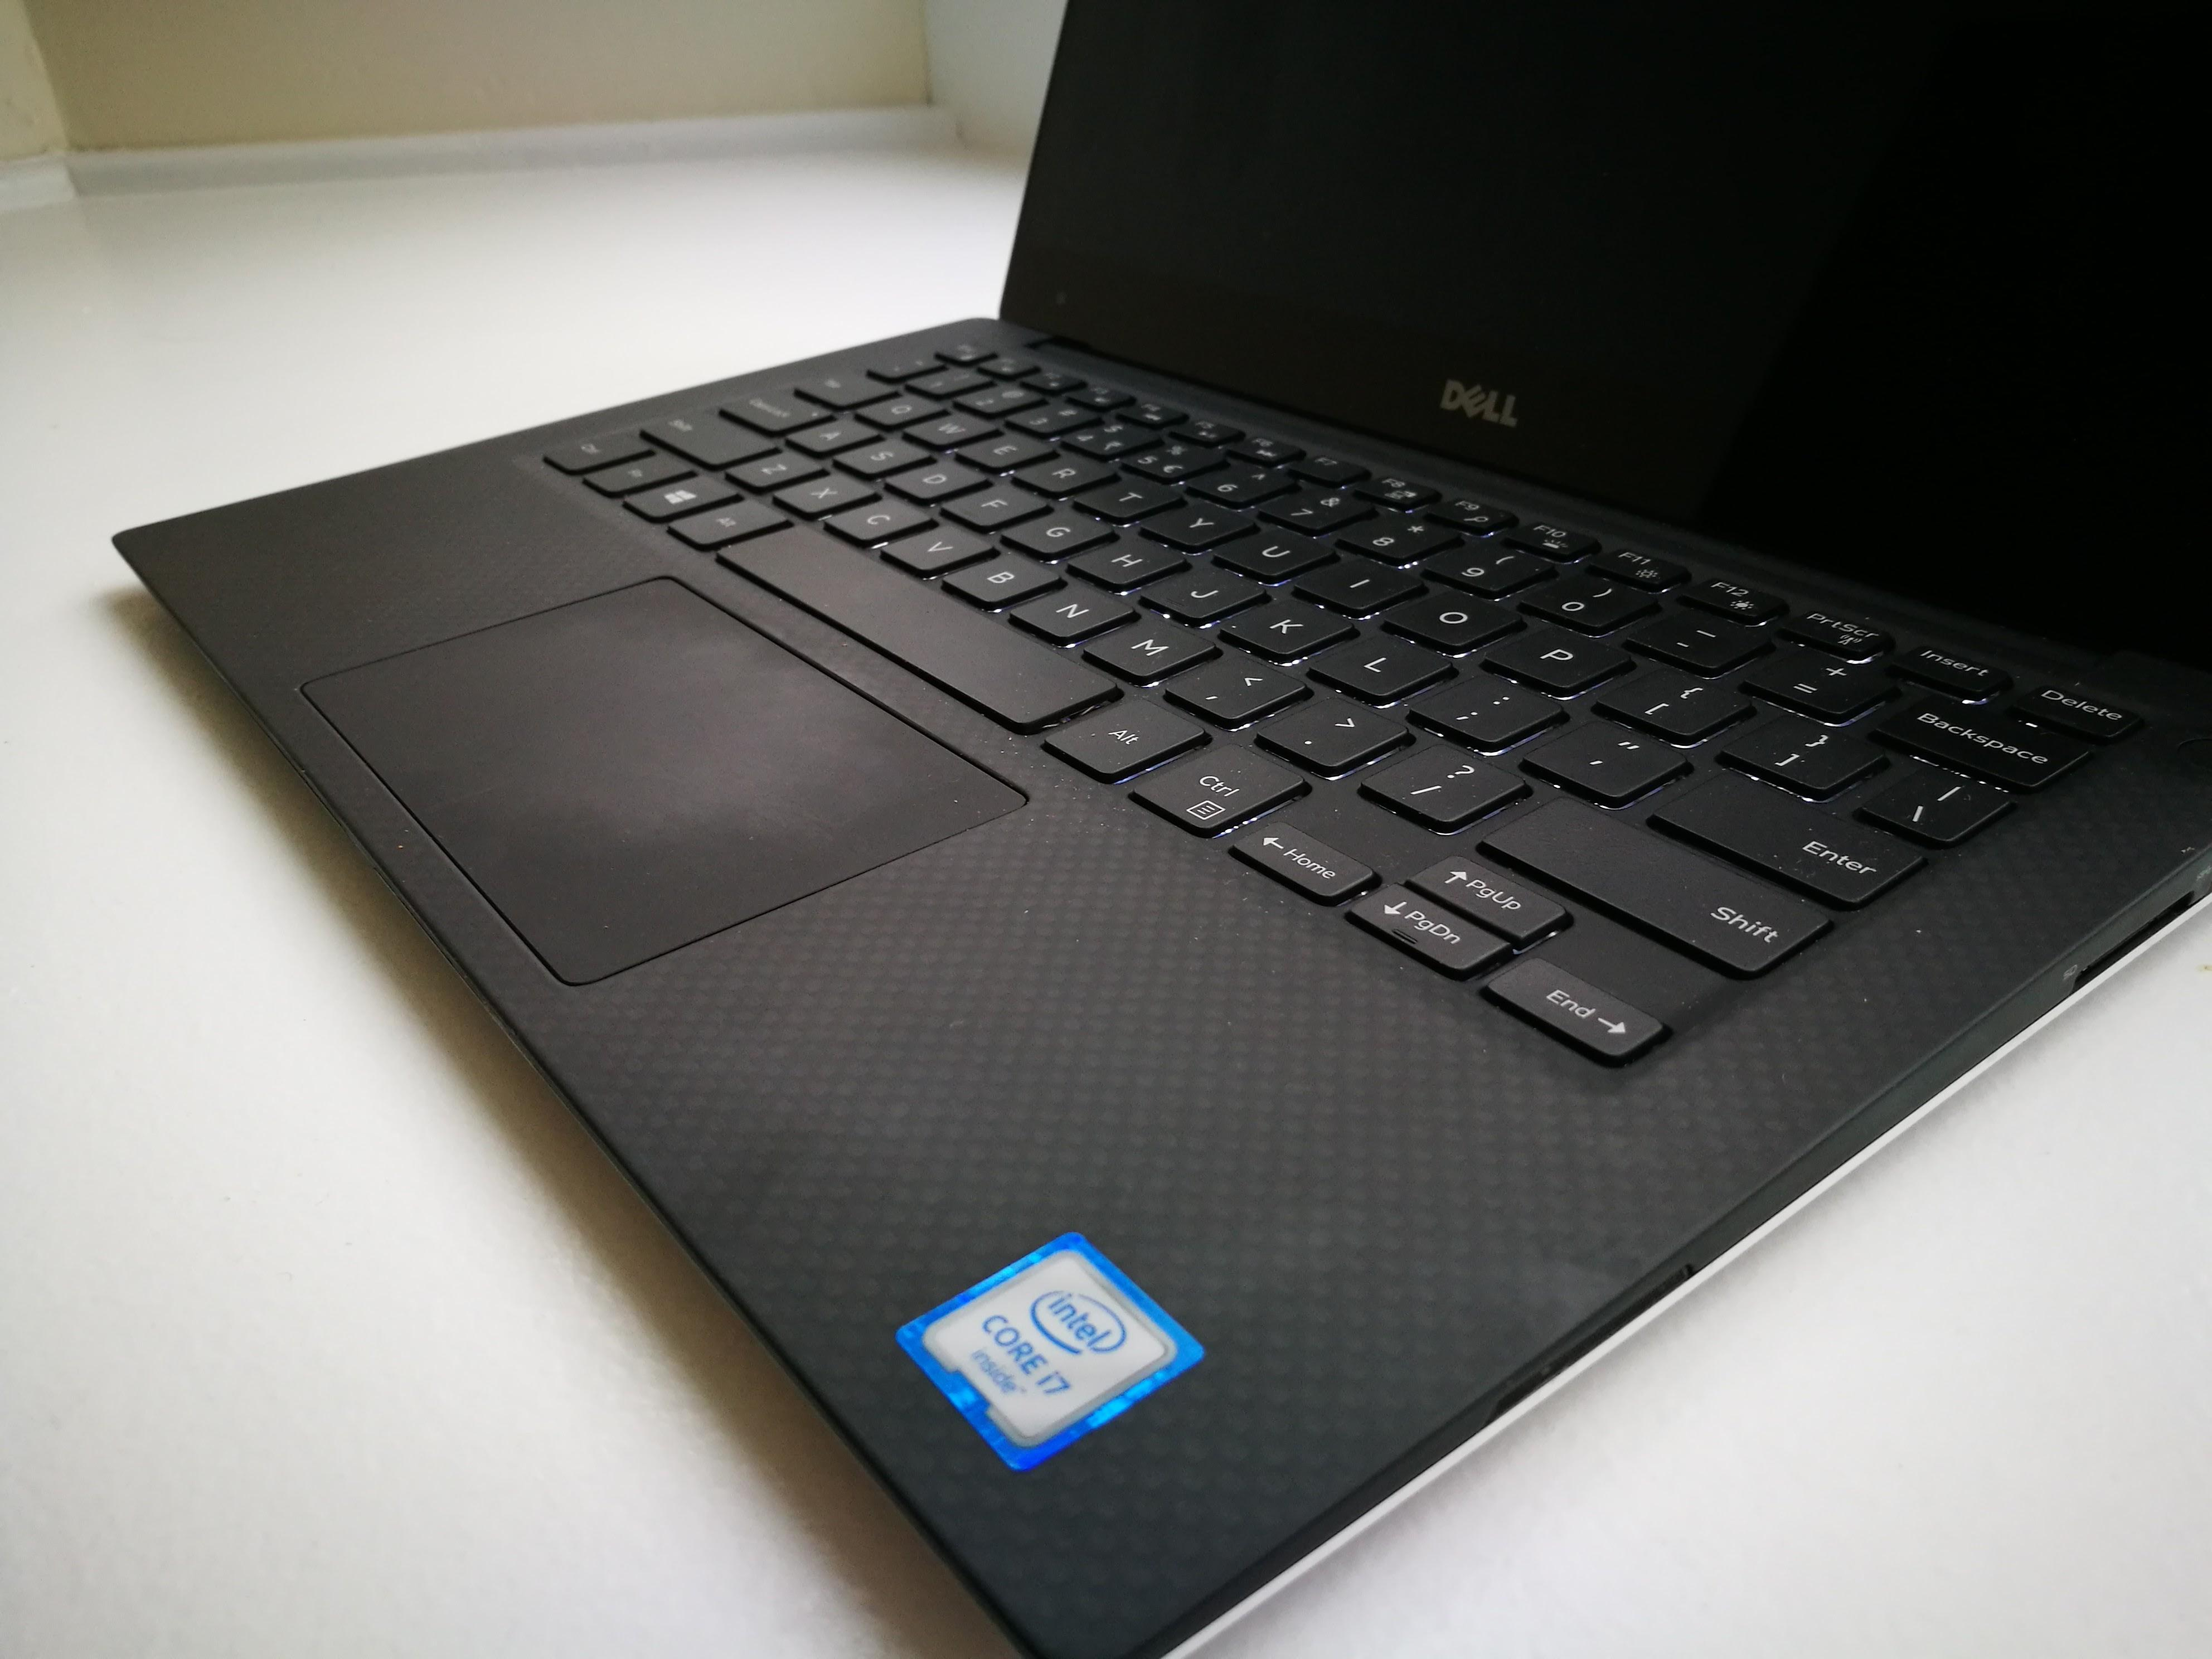 Dell XPS 13 Review - Keyboard